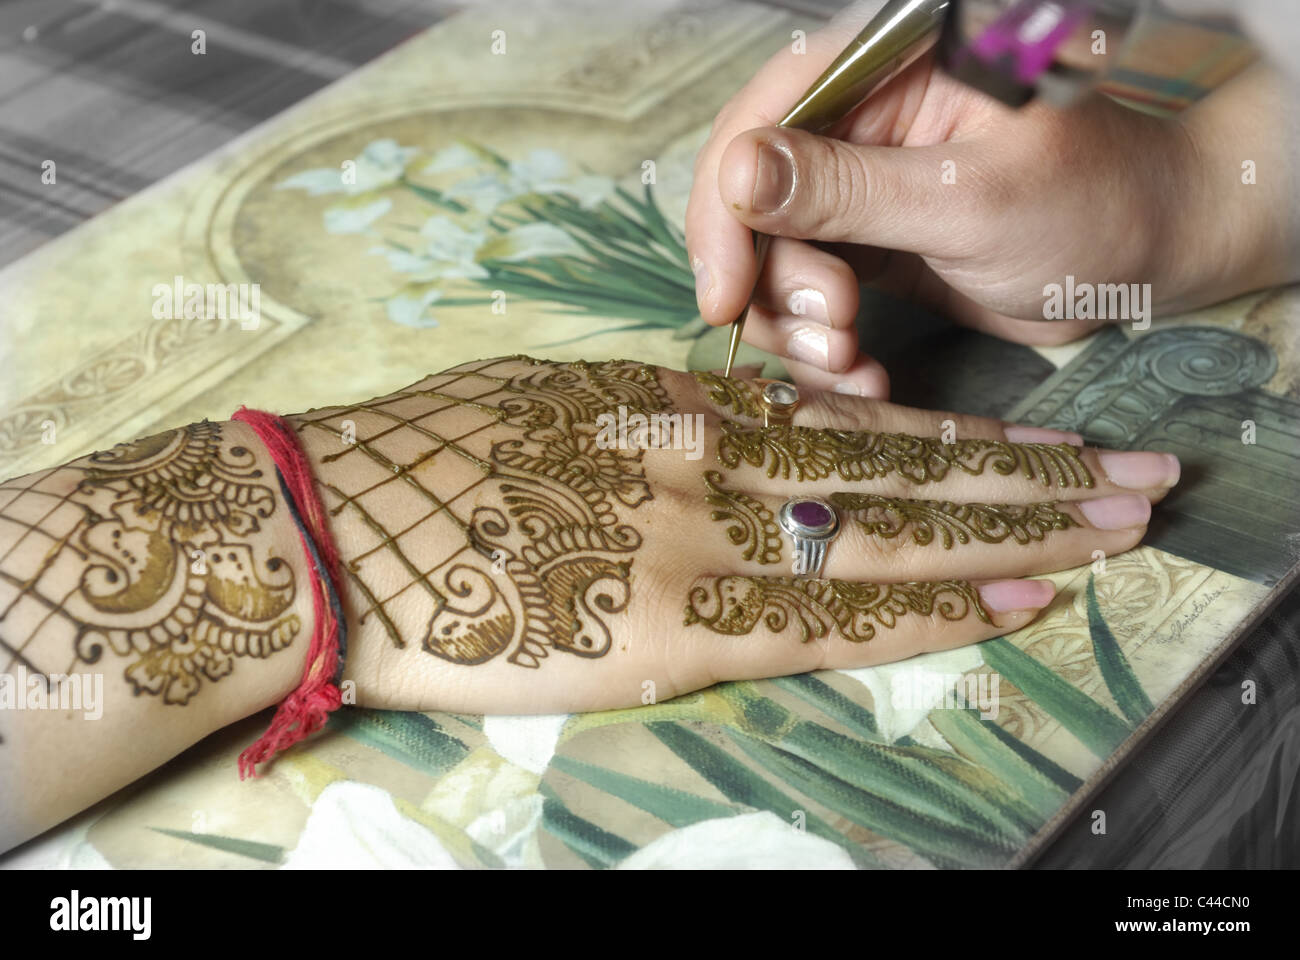 Henna artist applying henna on the hands of the bride's maid. - Stock Image